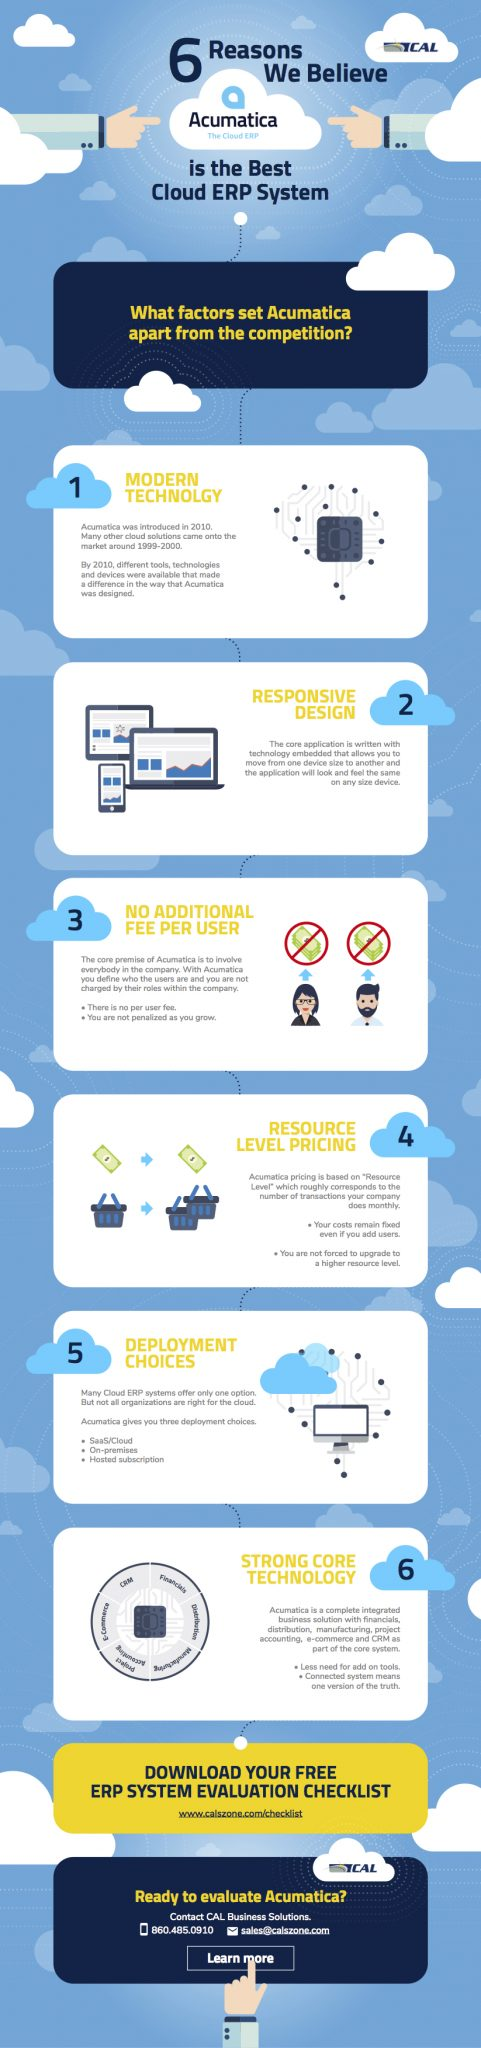 INFOGRAPHIC: 6 Reasons I Believe Acumatica is The Best ERP Cloud System